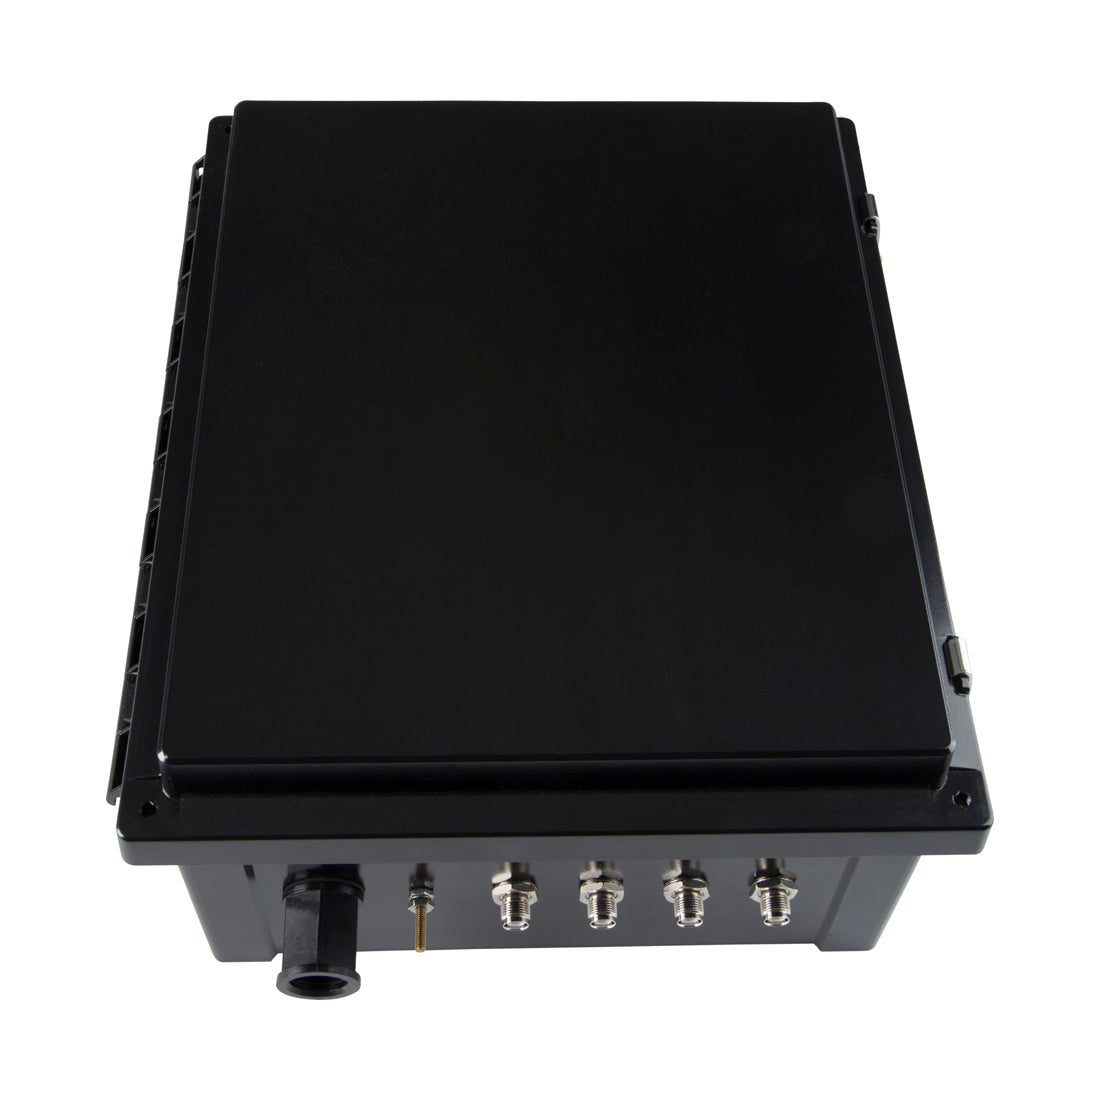 PCE1210604B: Black 12x10x6 inch NEMA 4 RFID Reader Enclosure for Impinj Zebra Alien ThingMagic